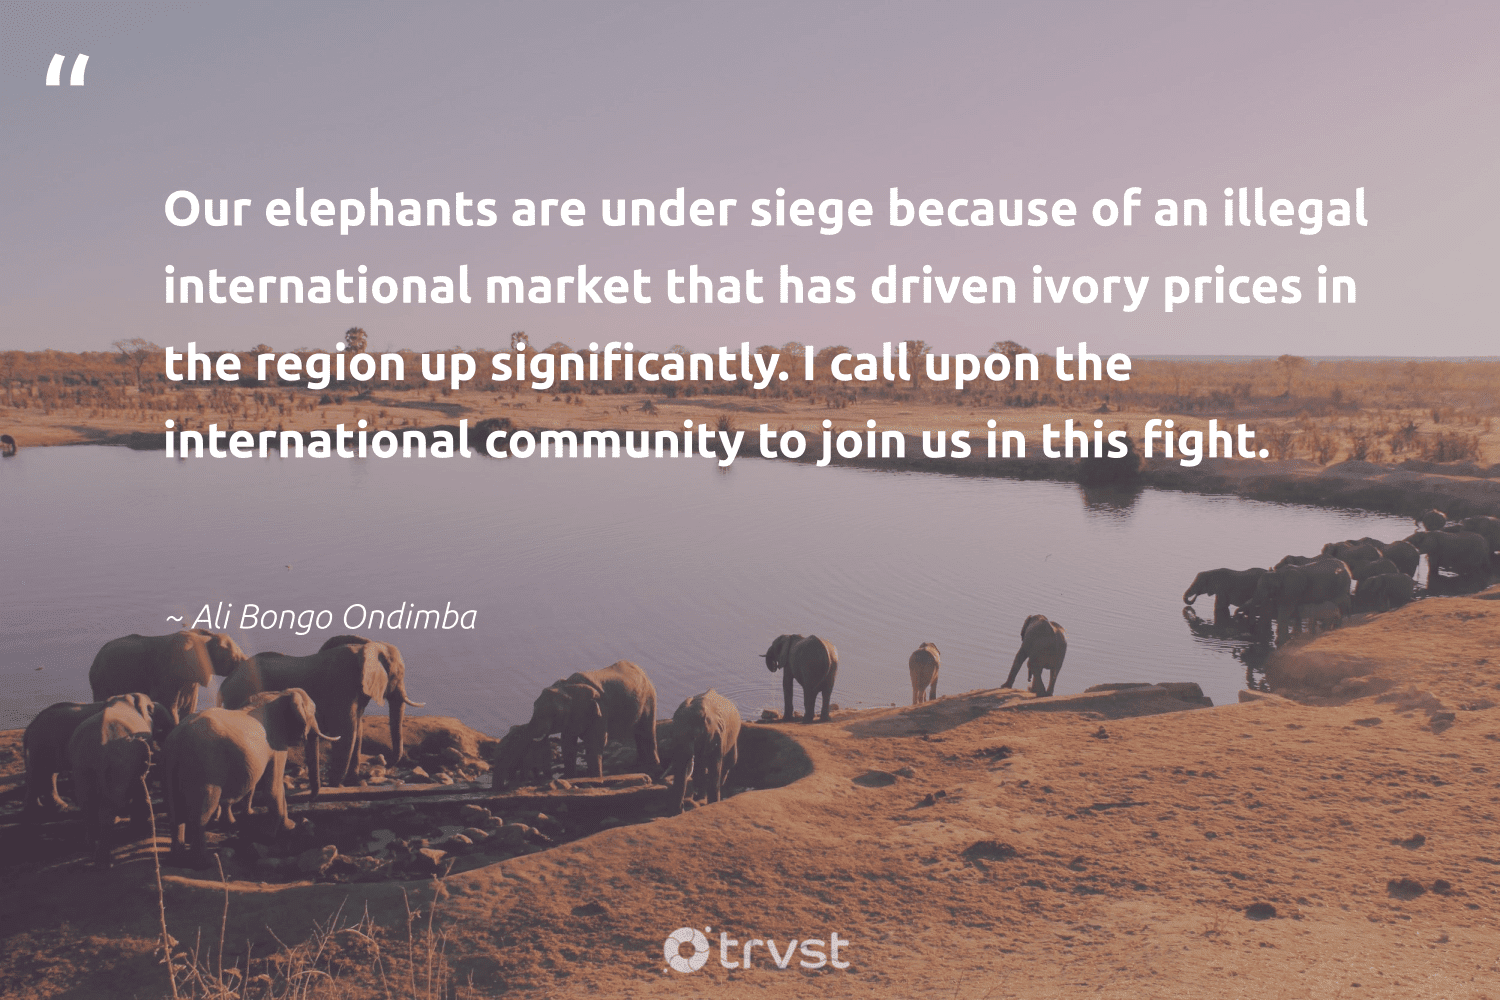 """""""Our elephants are under siege because of an illegal international market that has driven ivory prices in the region up significantly. I call upon the international community to join us in this fight.""""  - Ali Bongo Ondimba #trvst #quotes #elephants #wildlife #ecoconscious #elephantlover #dosomething #mammals #dogood #wildanimals #planetearthfirst #conservation"""